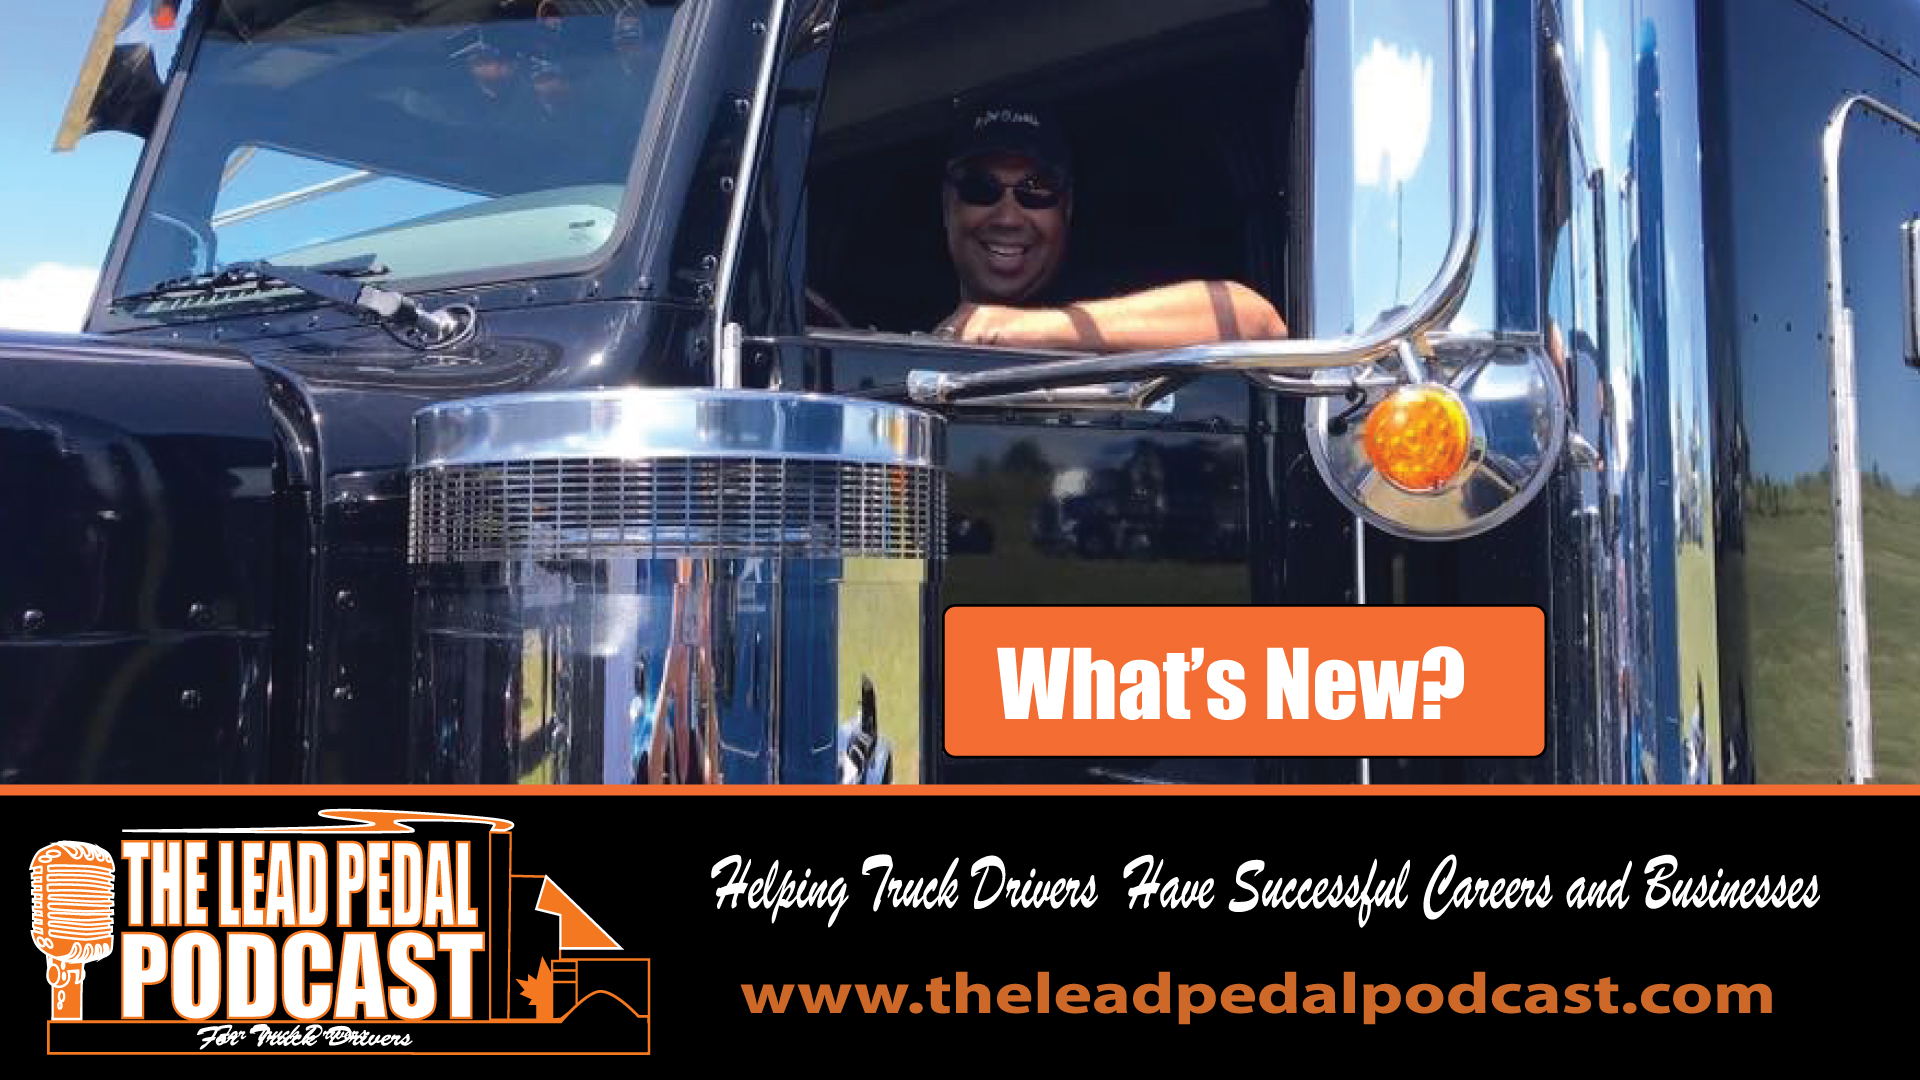 What's New on the Lead Pedal Podcast